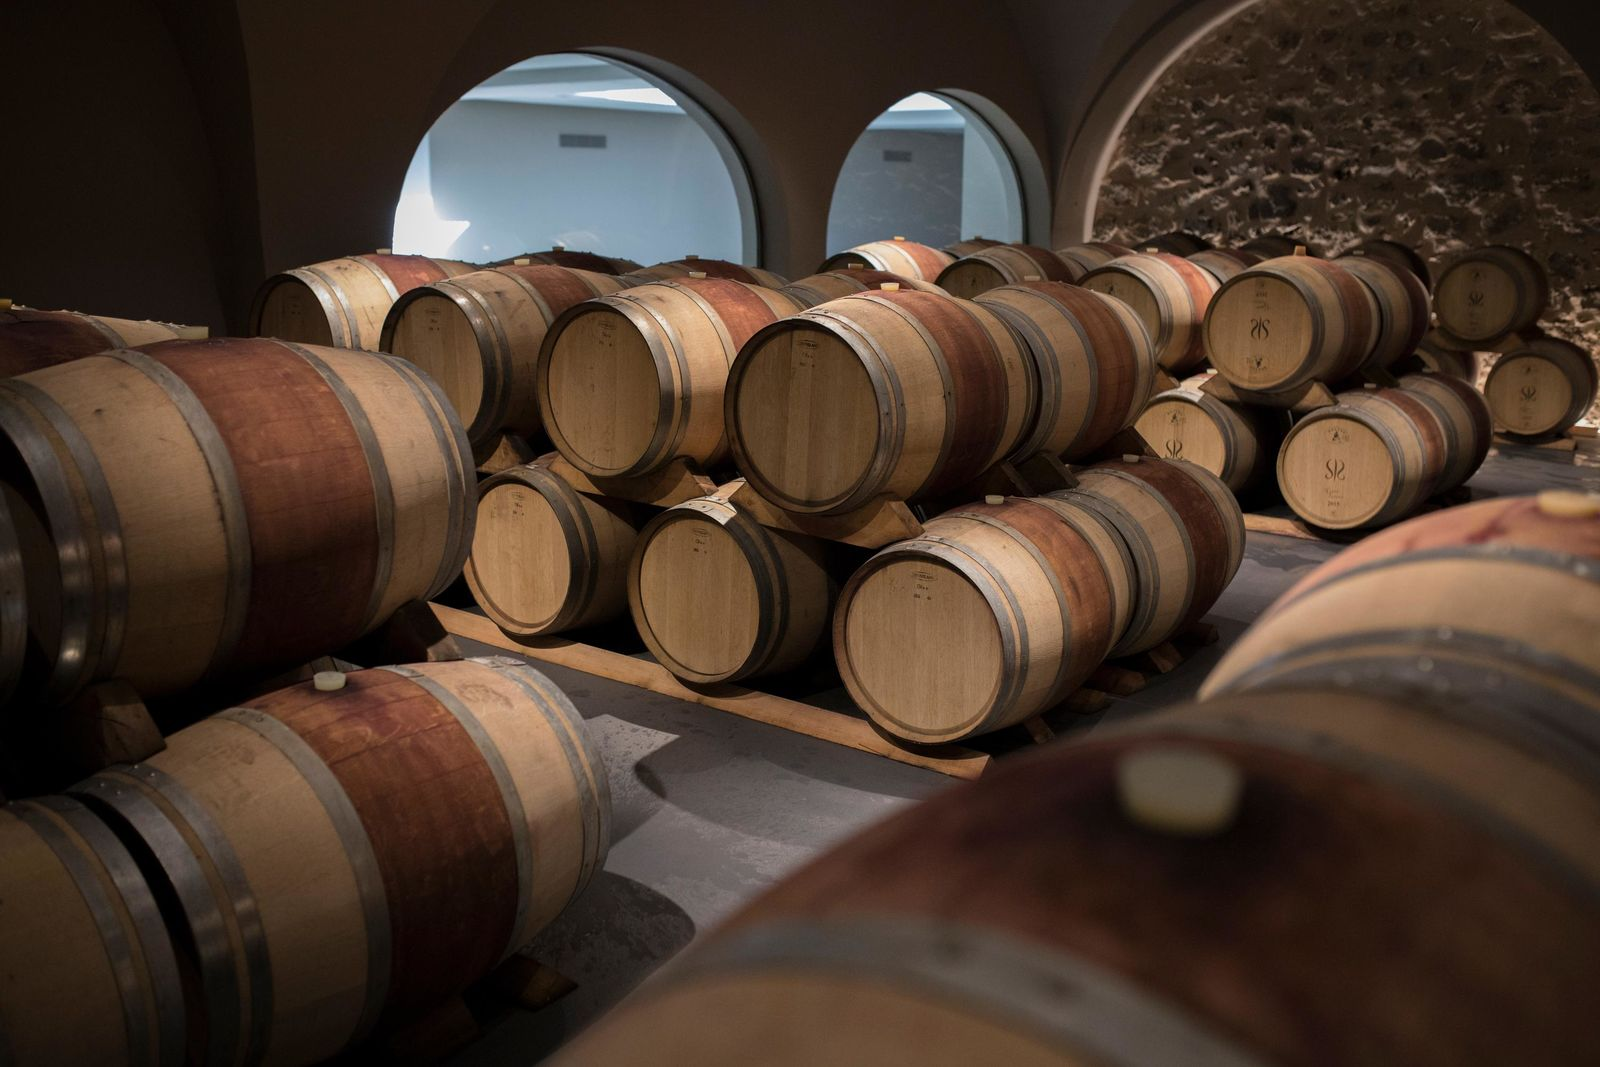 Wine barrels sit in a wine cellar in the southern France region of Provence, Friday Oct. 11, 2019. (AP Photo/Daniel Cole)